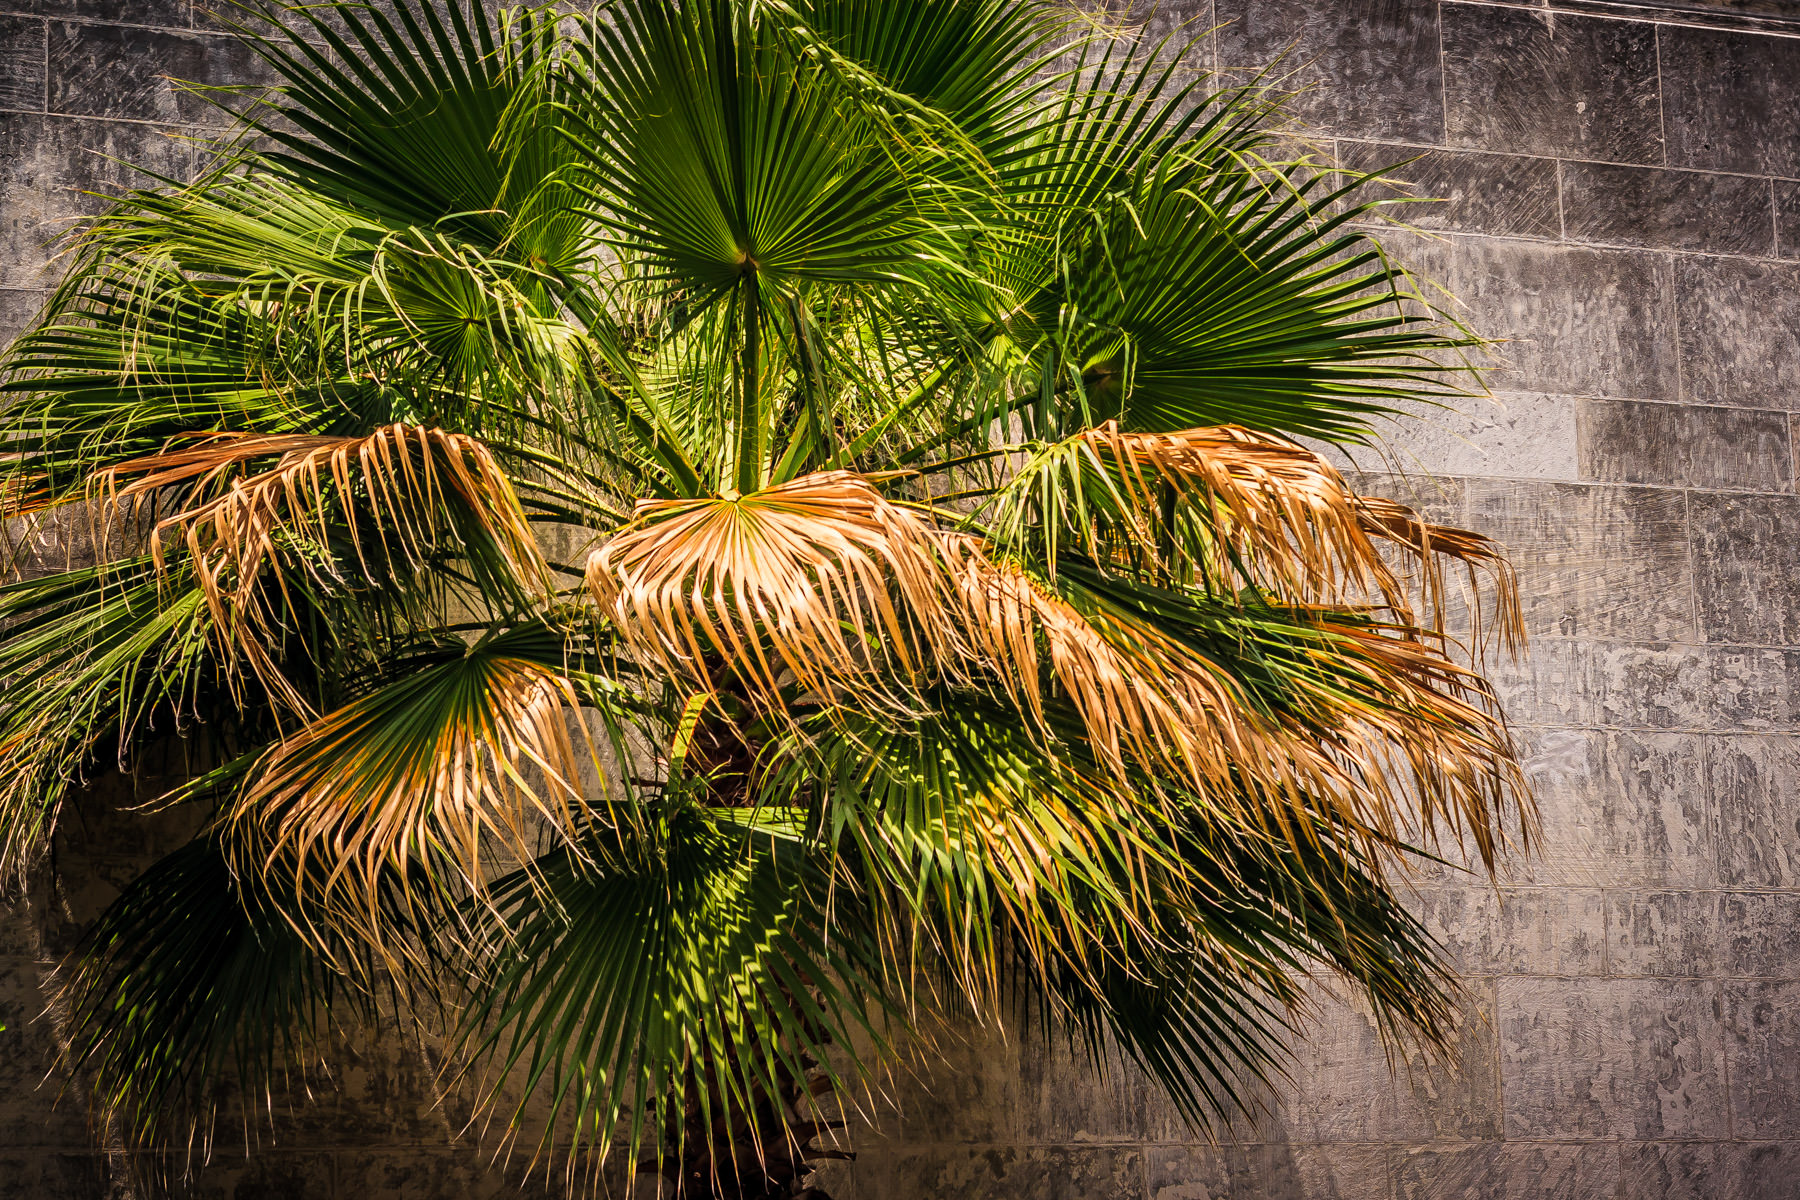 A palm tree at Dallas' Fair Park.